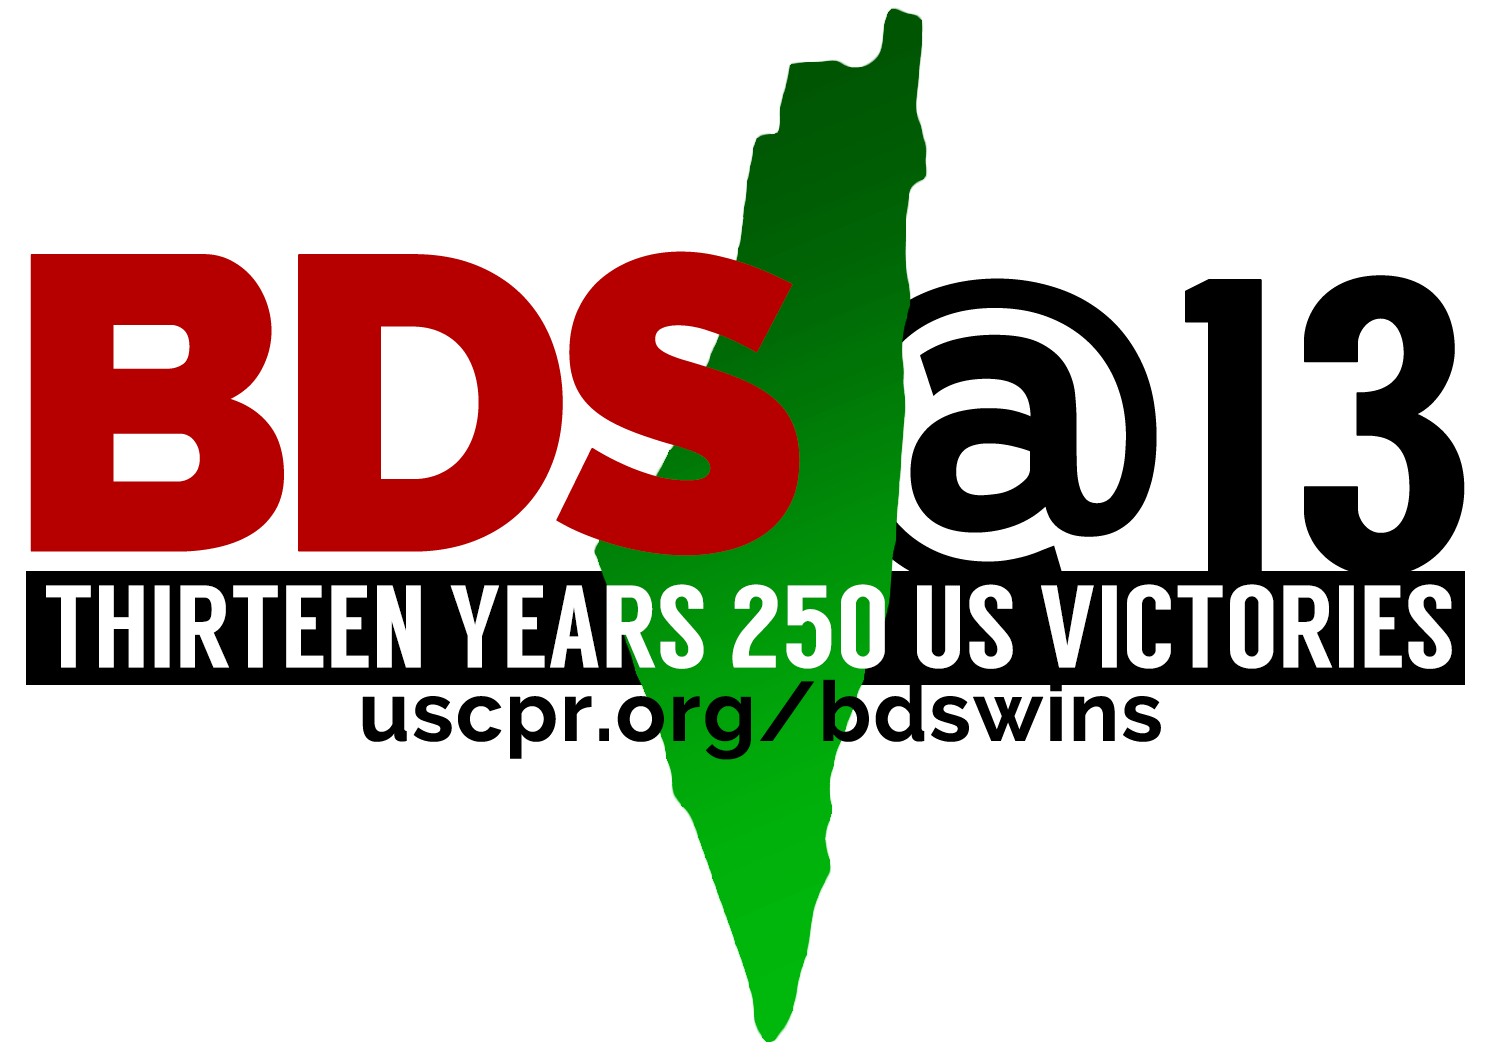 Bds 300 Us Bds Victories Us Campaign For Palestinian Rights